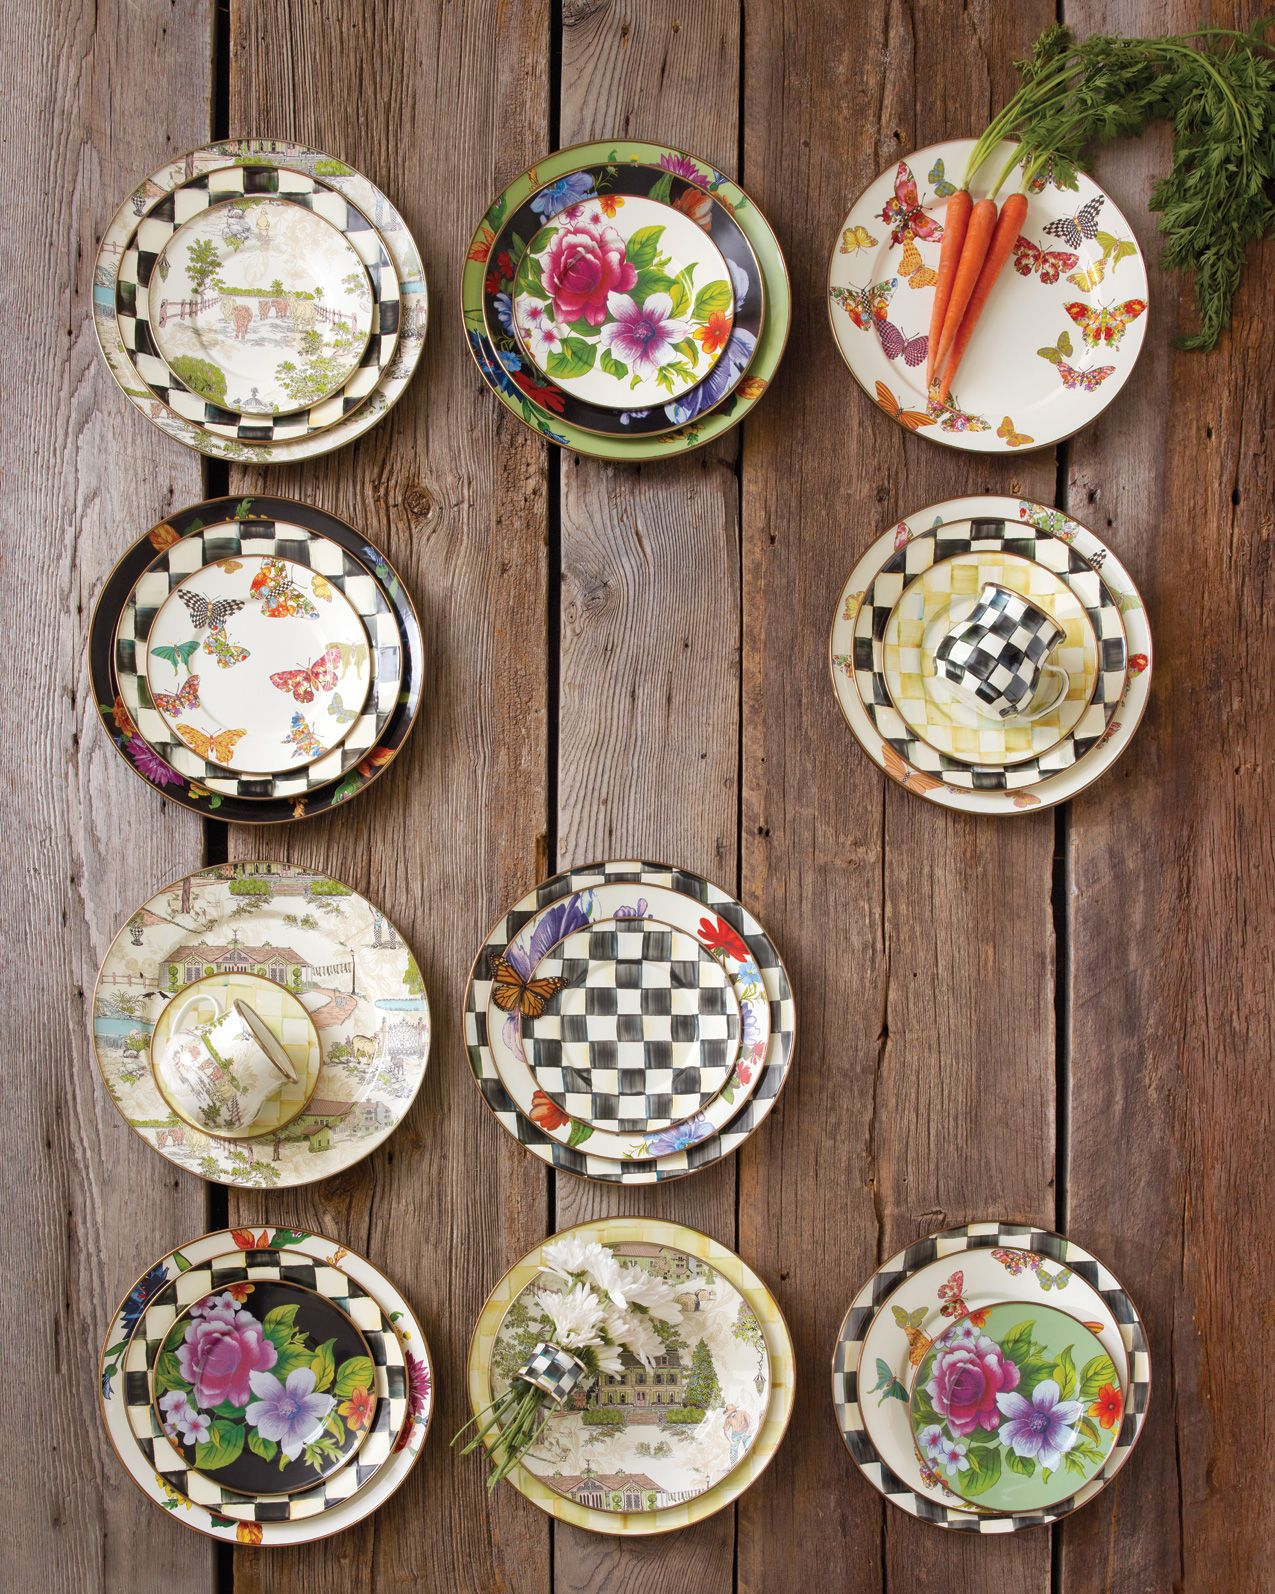 d2b2c961c3a7 Mix it up with MacKenzie-Childs! – Mix n  match for a fun and eclectic  table!  MacKenzie-Childs